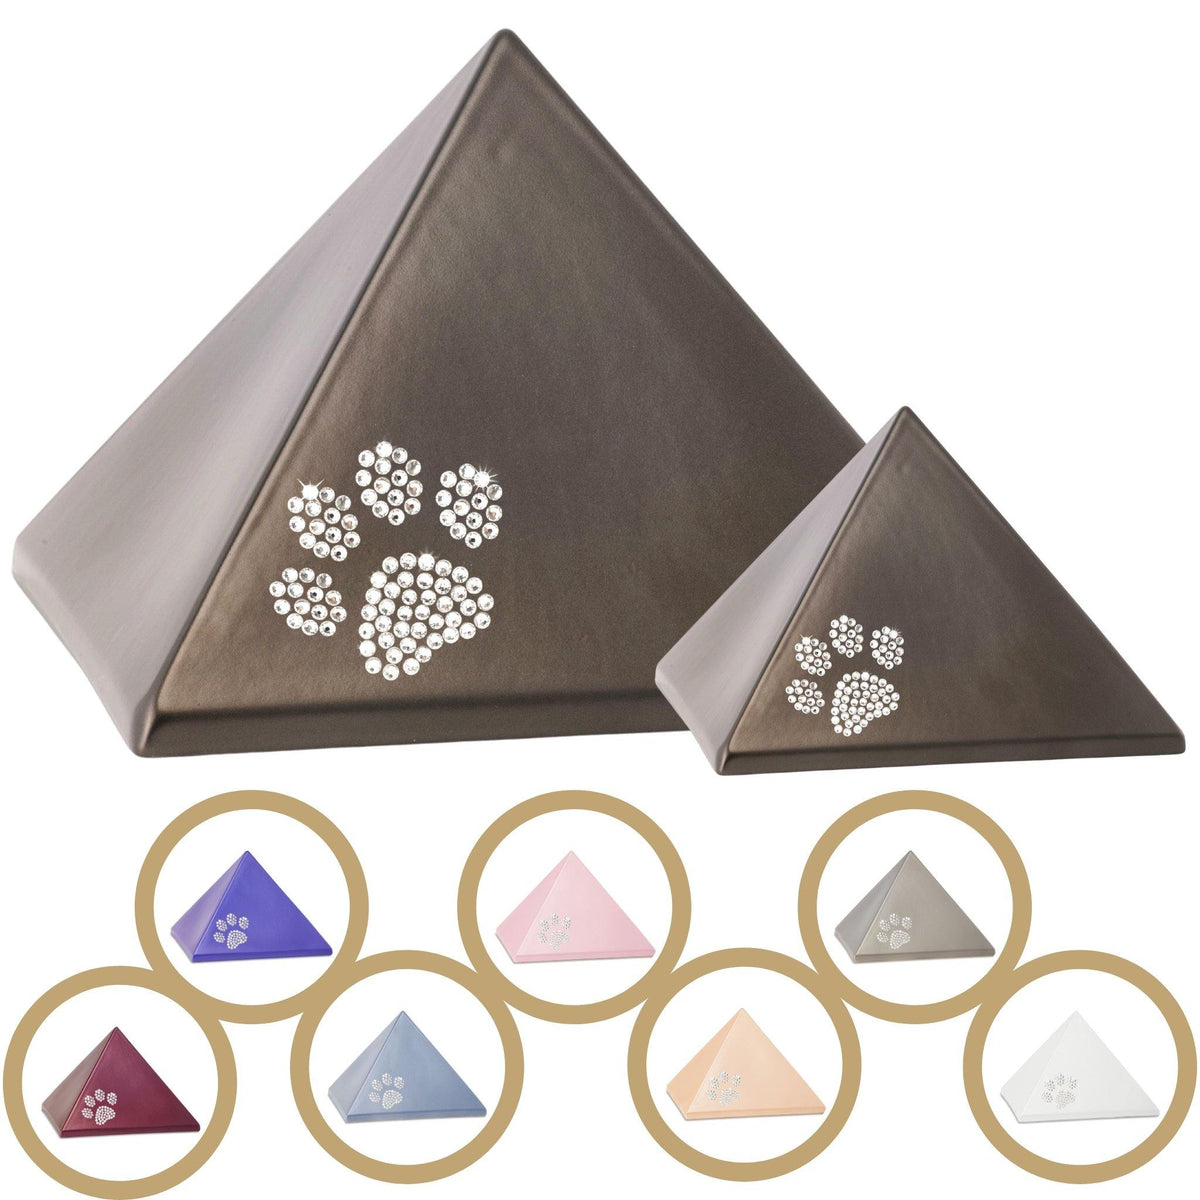 Penrith Crystal Paw Pyramid Cremation Ashes Urn - Urns UK